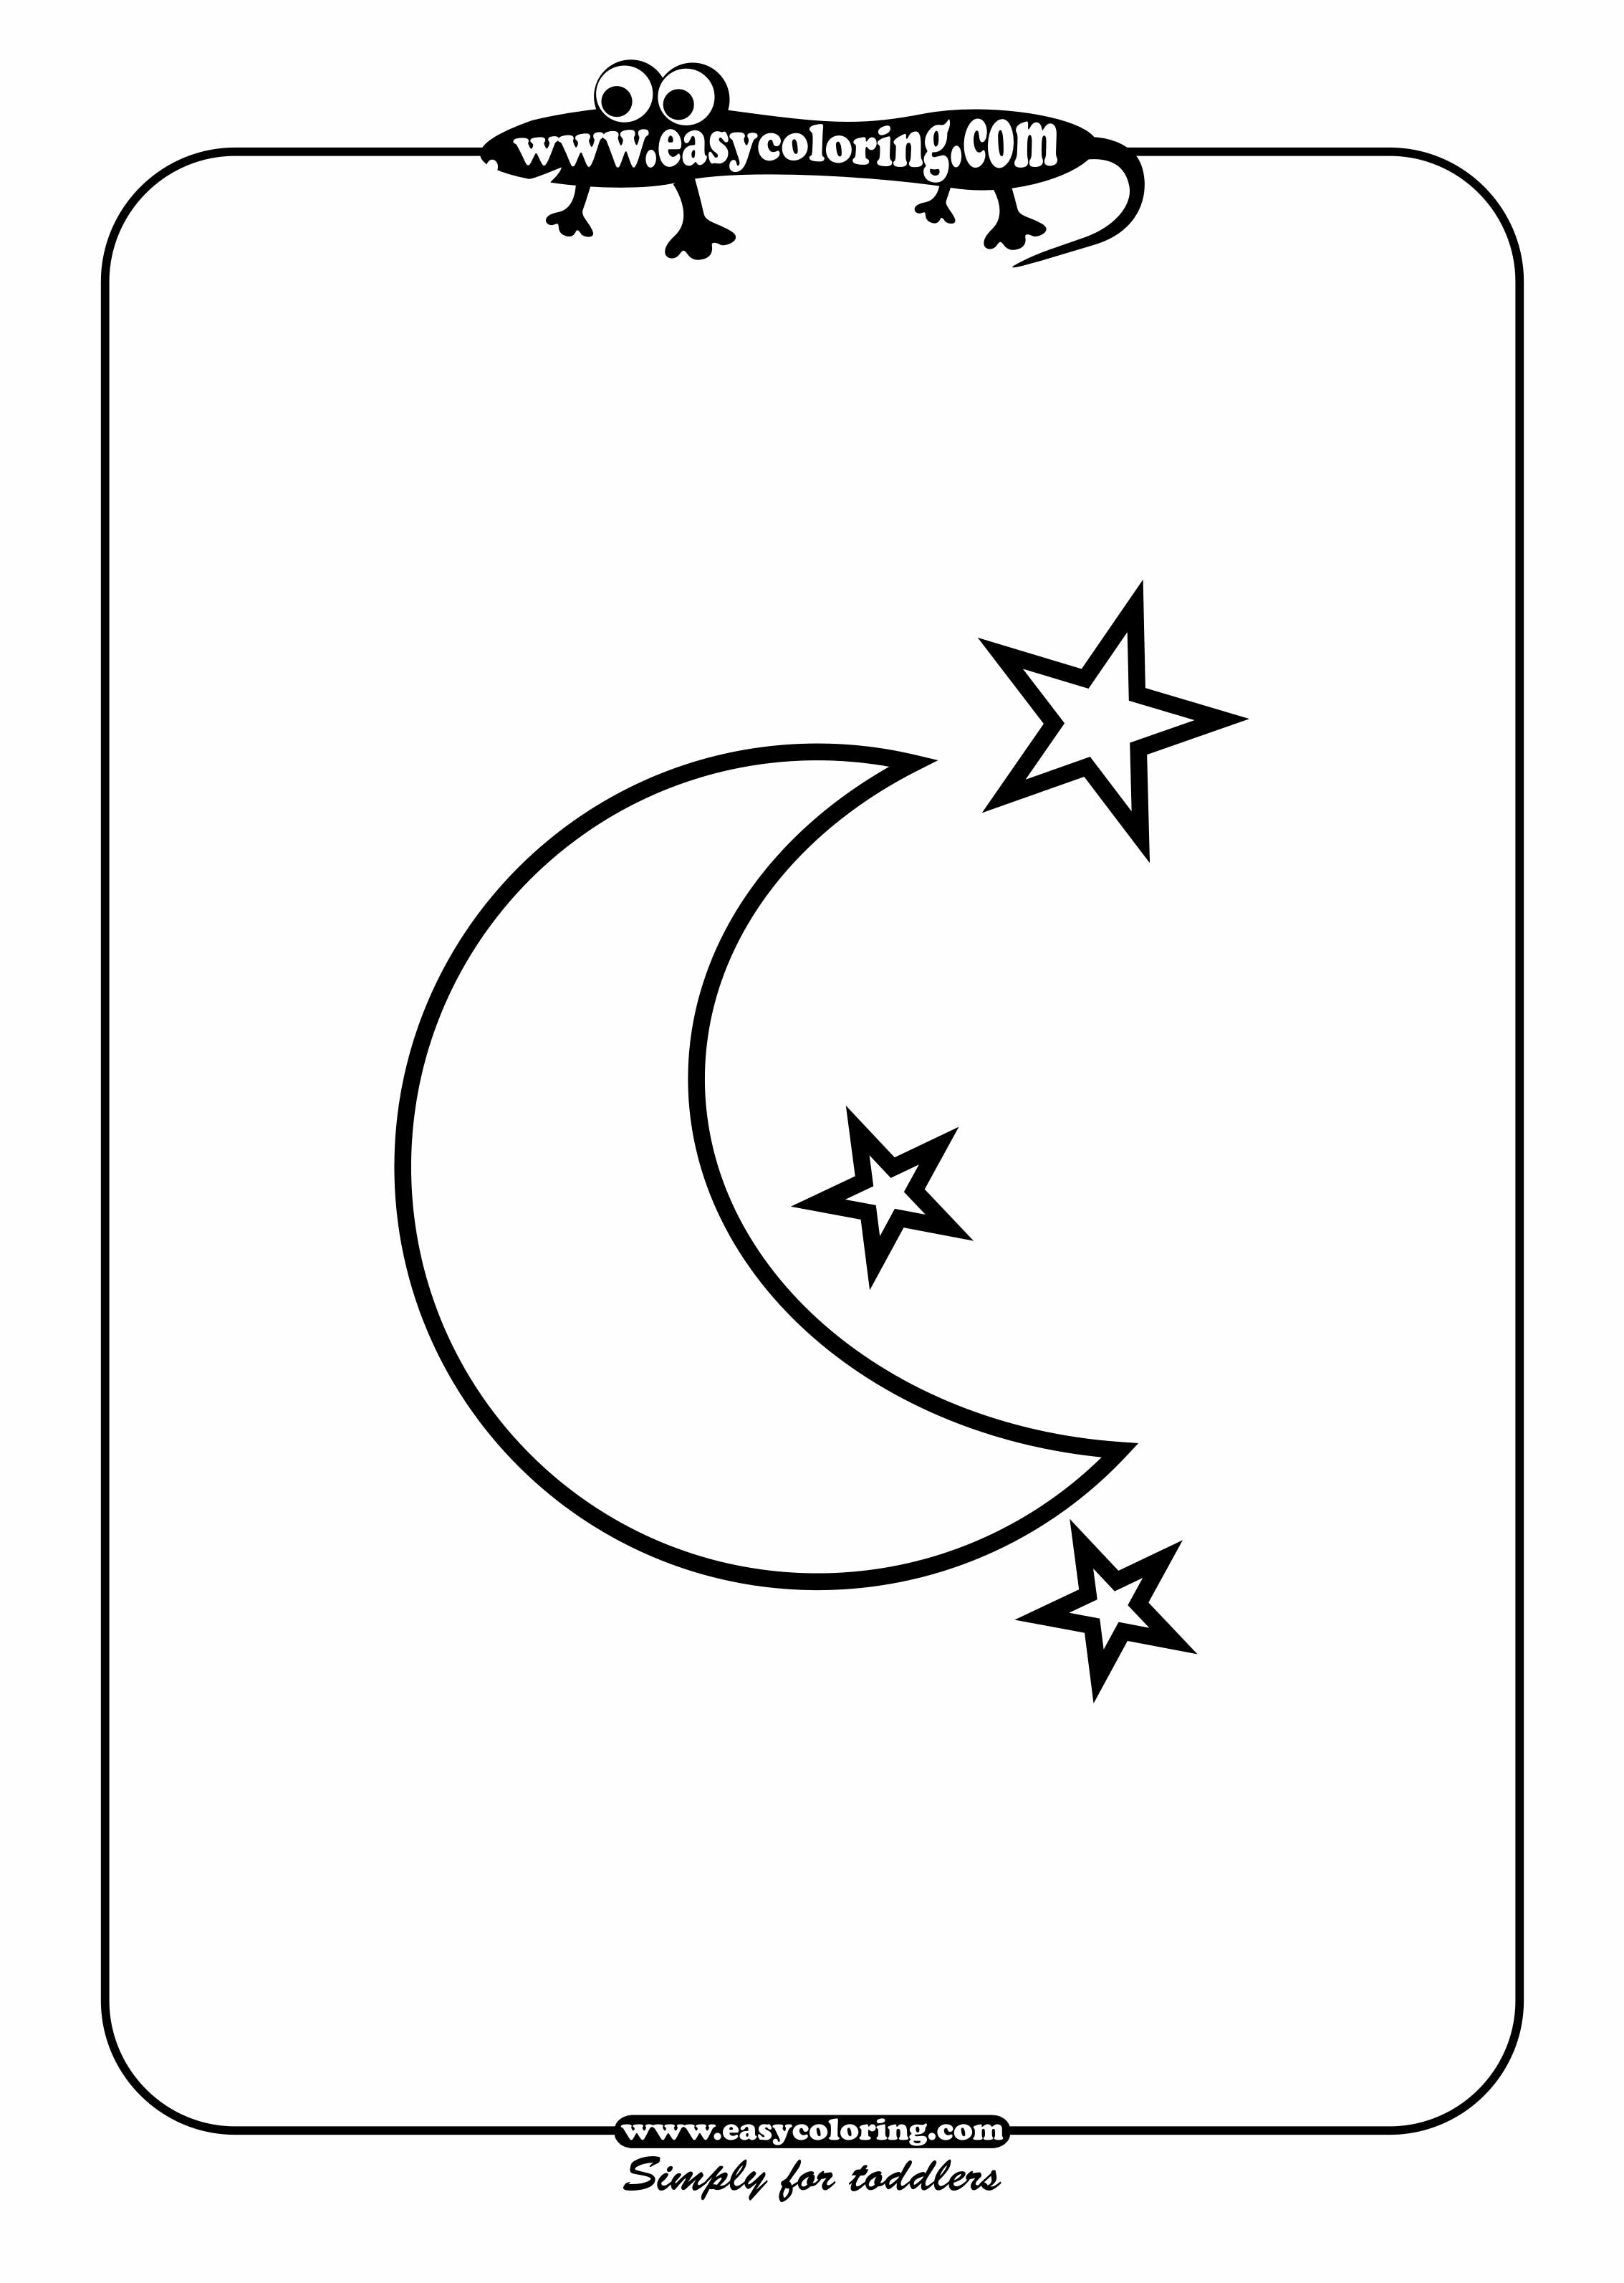 printable cresent shapes coloring pages - photo#47